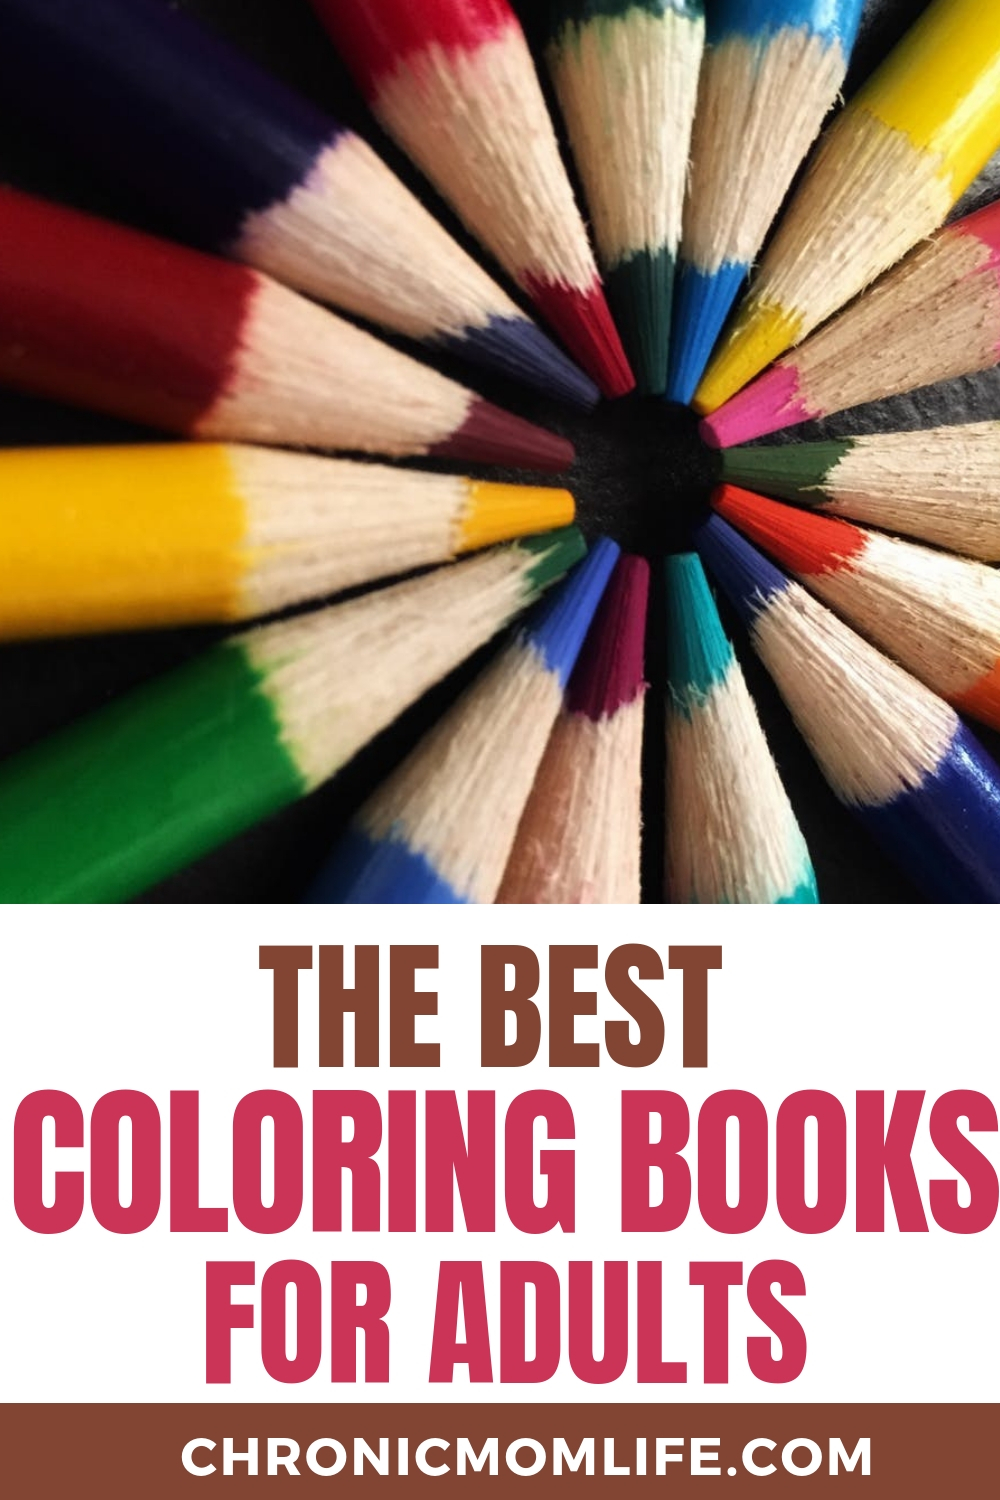 The best coloring books for adults #Journal #coloring #bulletjournal